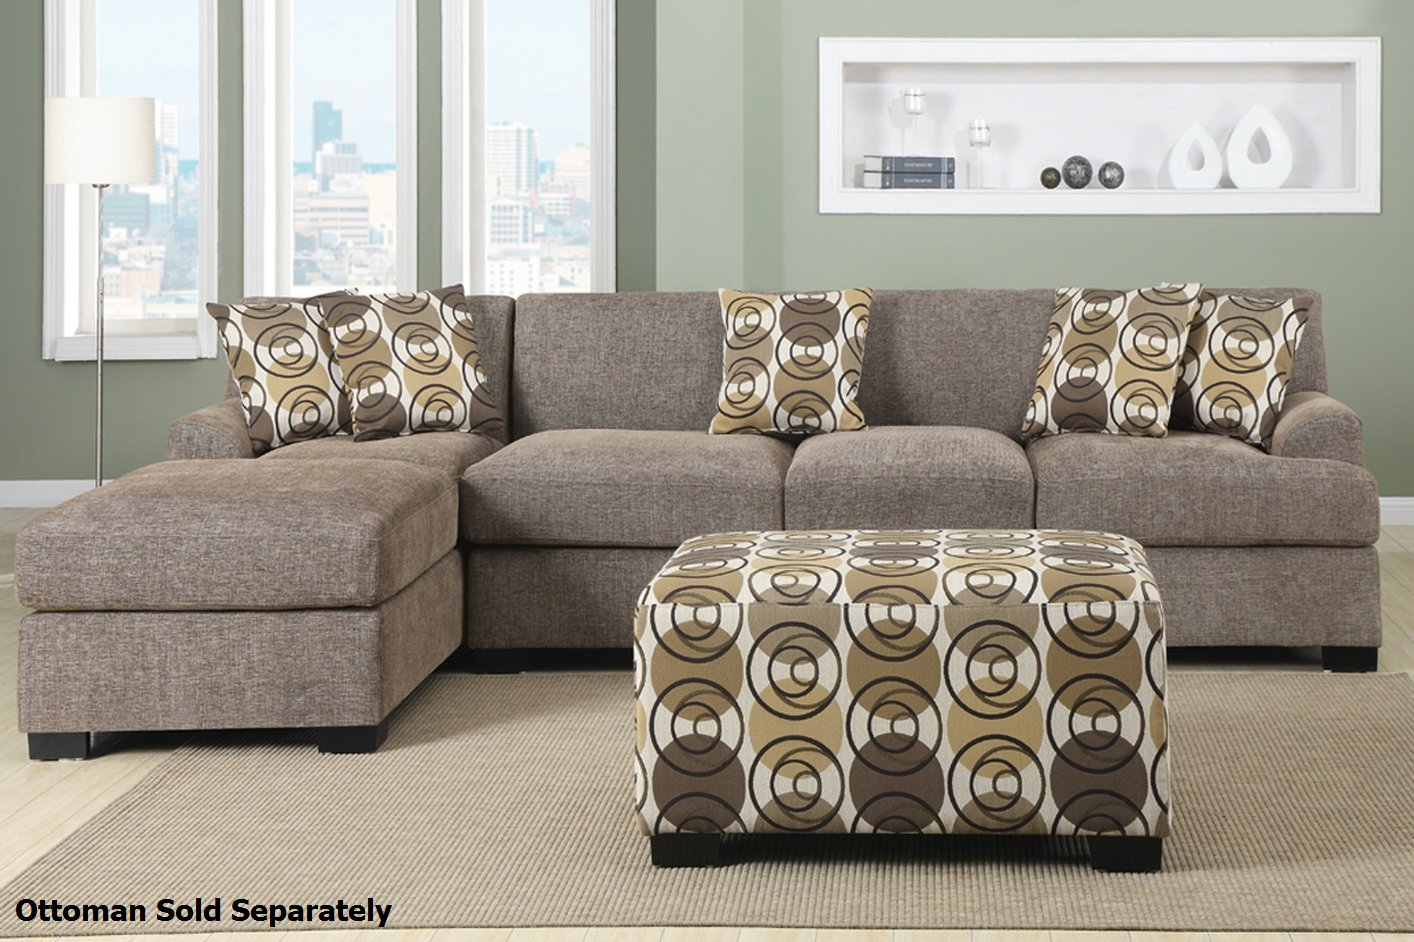 montreal iii beige fabric sectional sofa steal a sofa furniture outlet los angeles ca. Black Bedroom Furniture Sets. Home Design Ideas